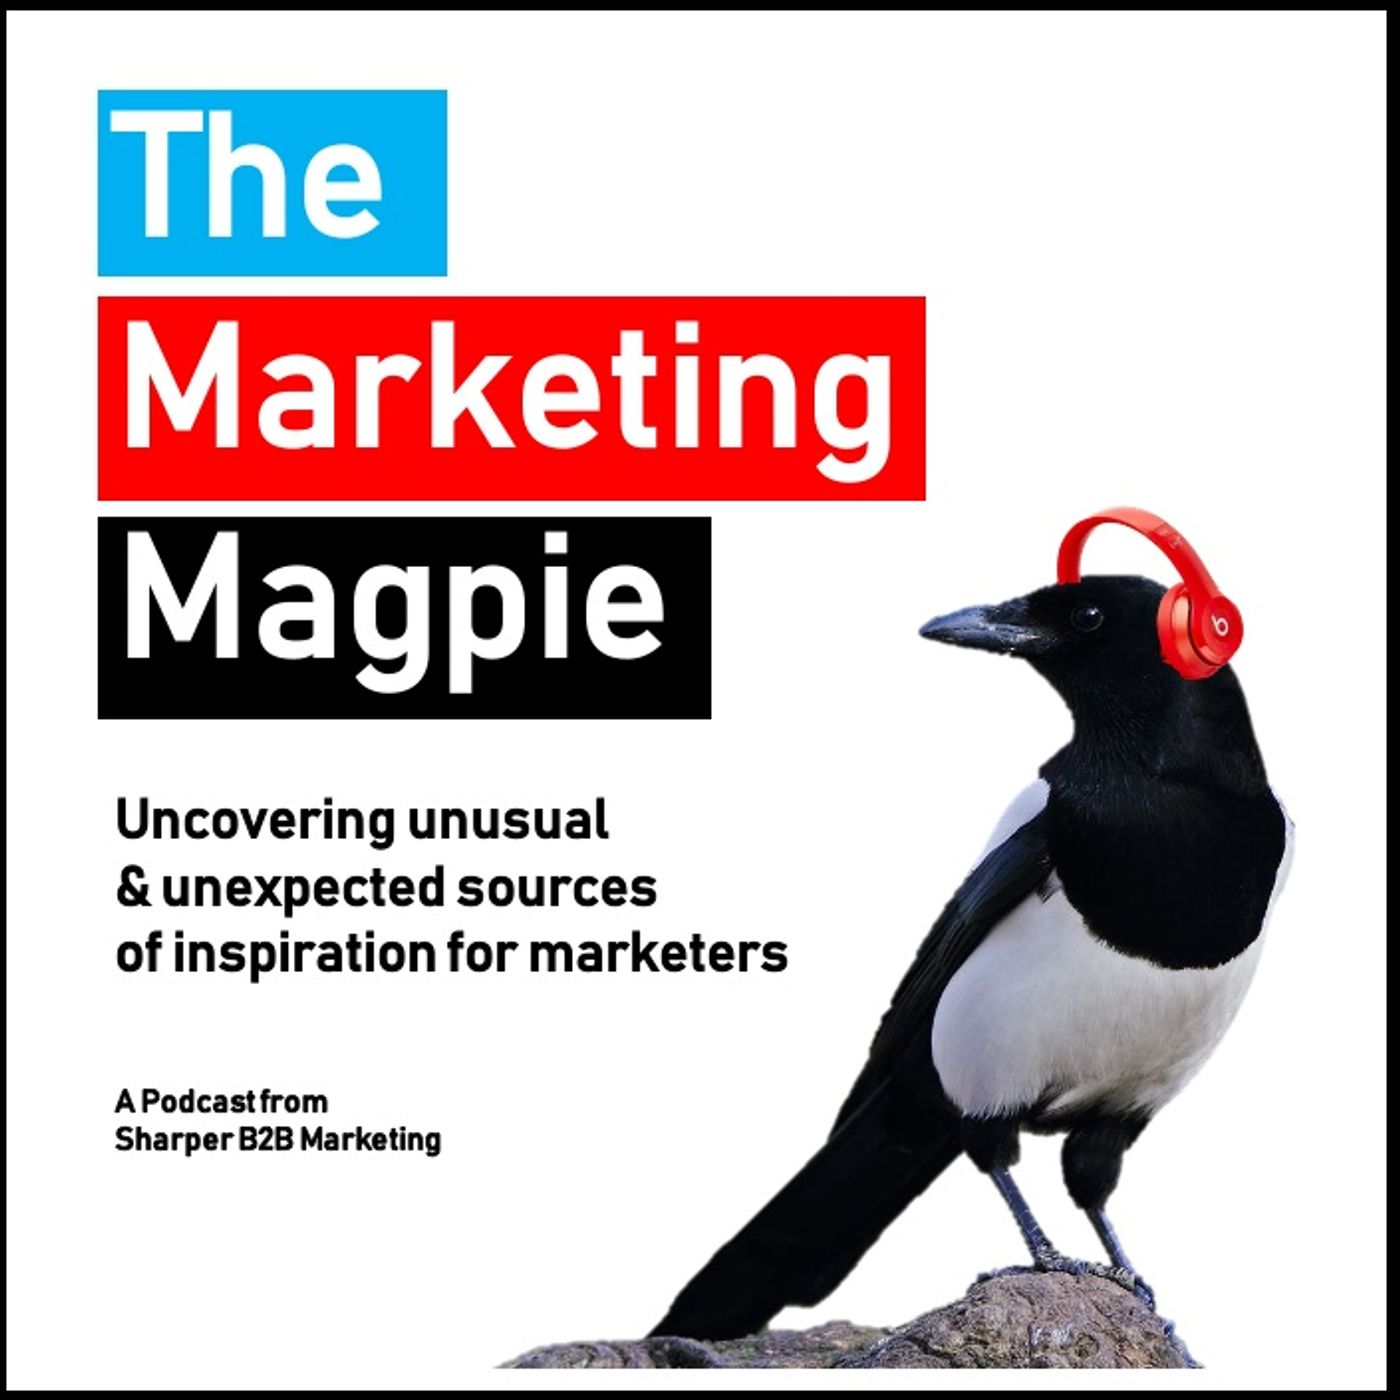 The Marketing Magpie - The Trailer